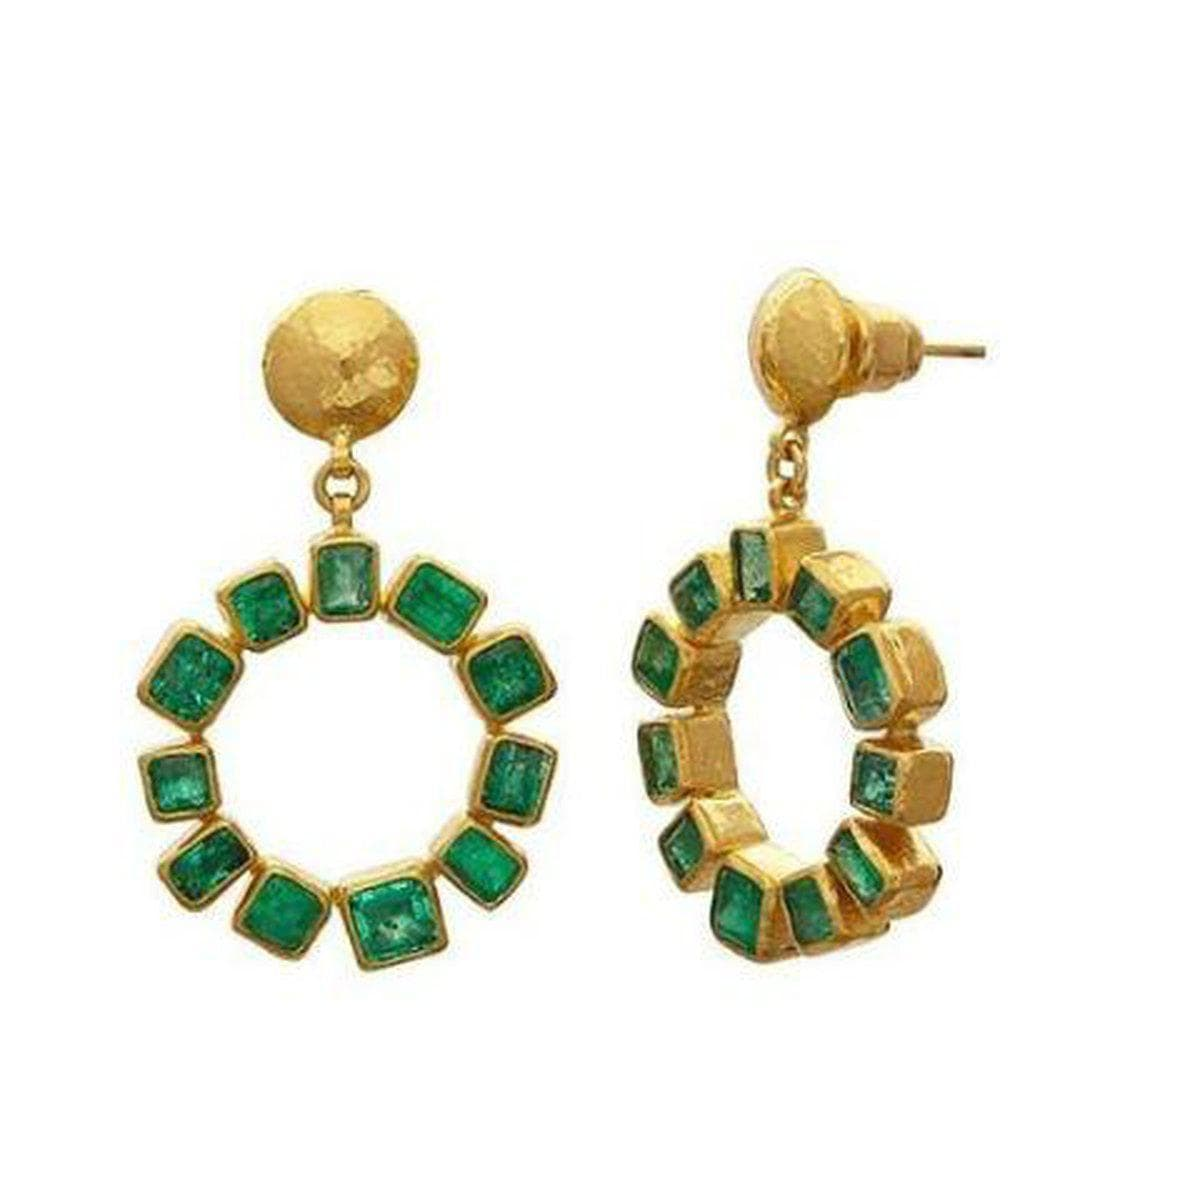 Rainbow 24K Gold Emerald Earrings - ELT-LE-RDHP24-CEM-GURHAN-Renee Taylor Gallery